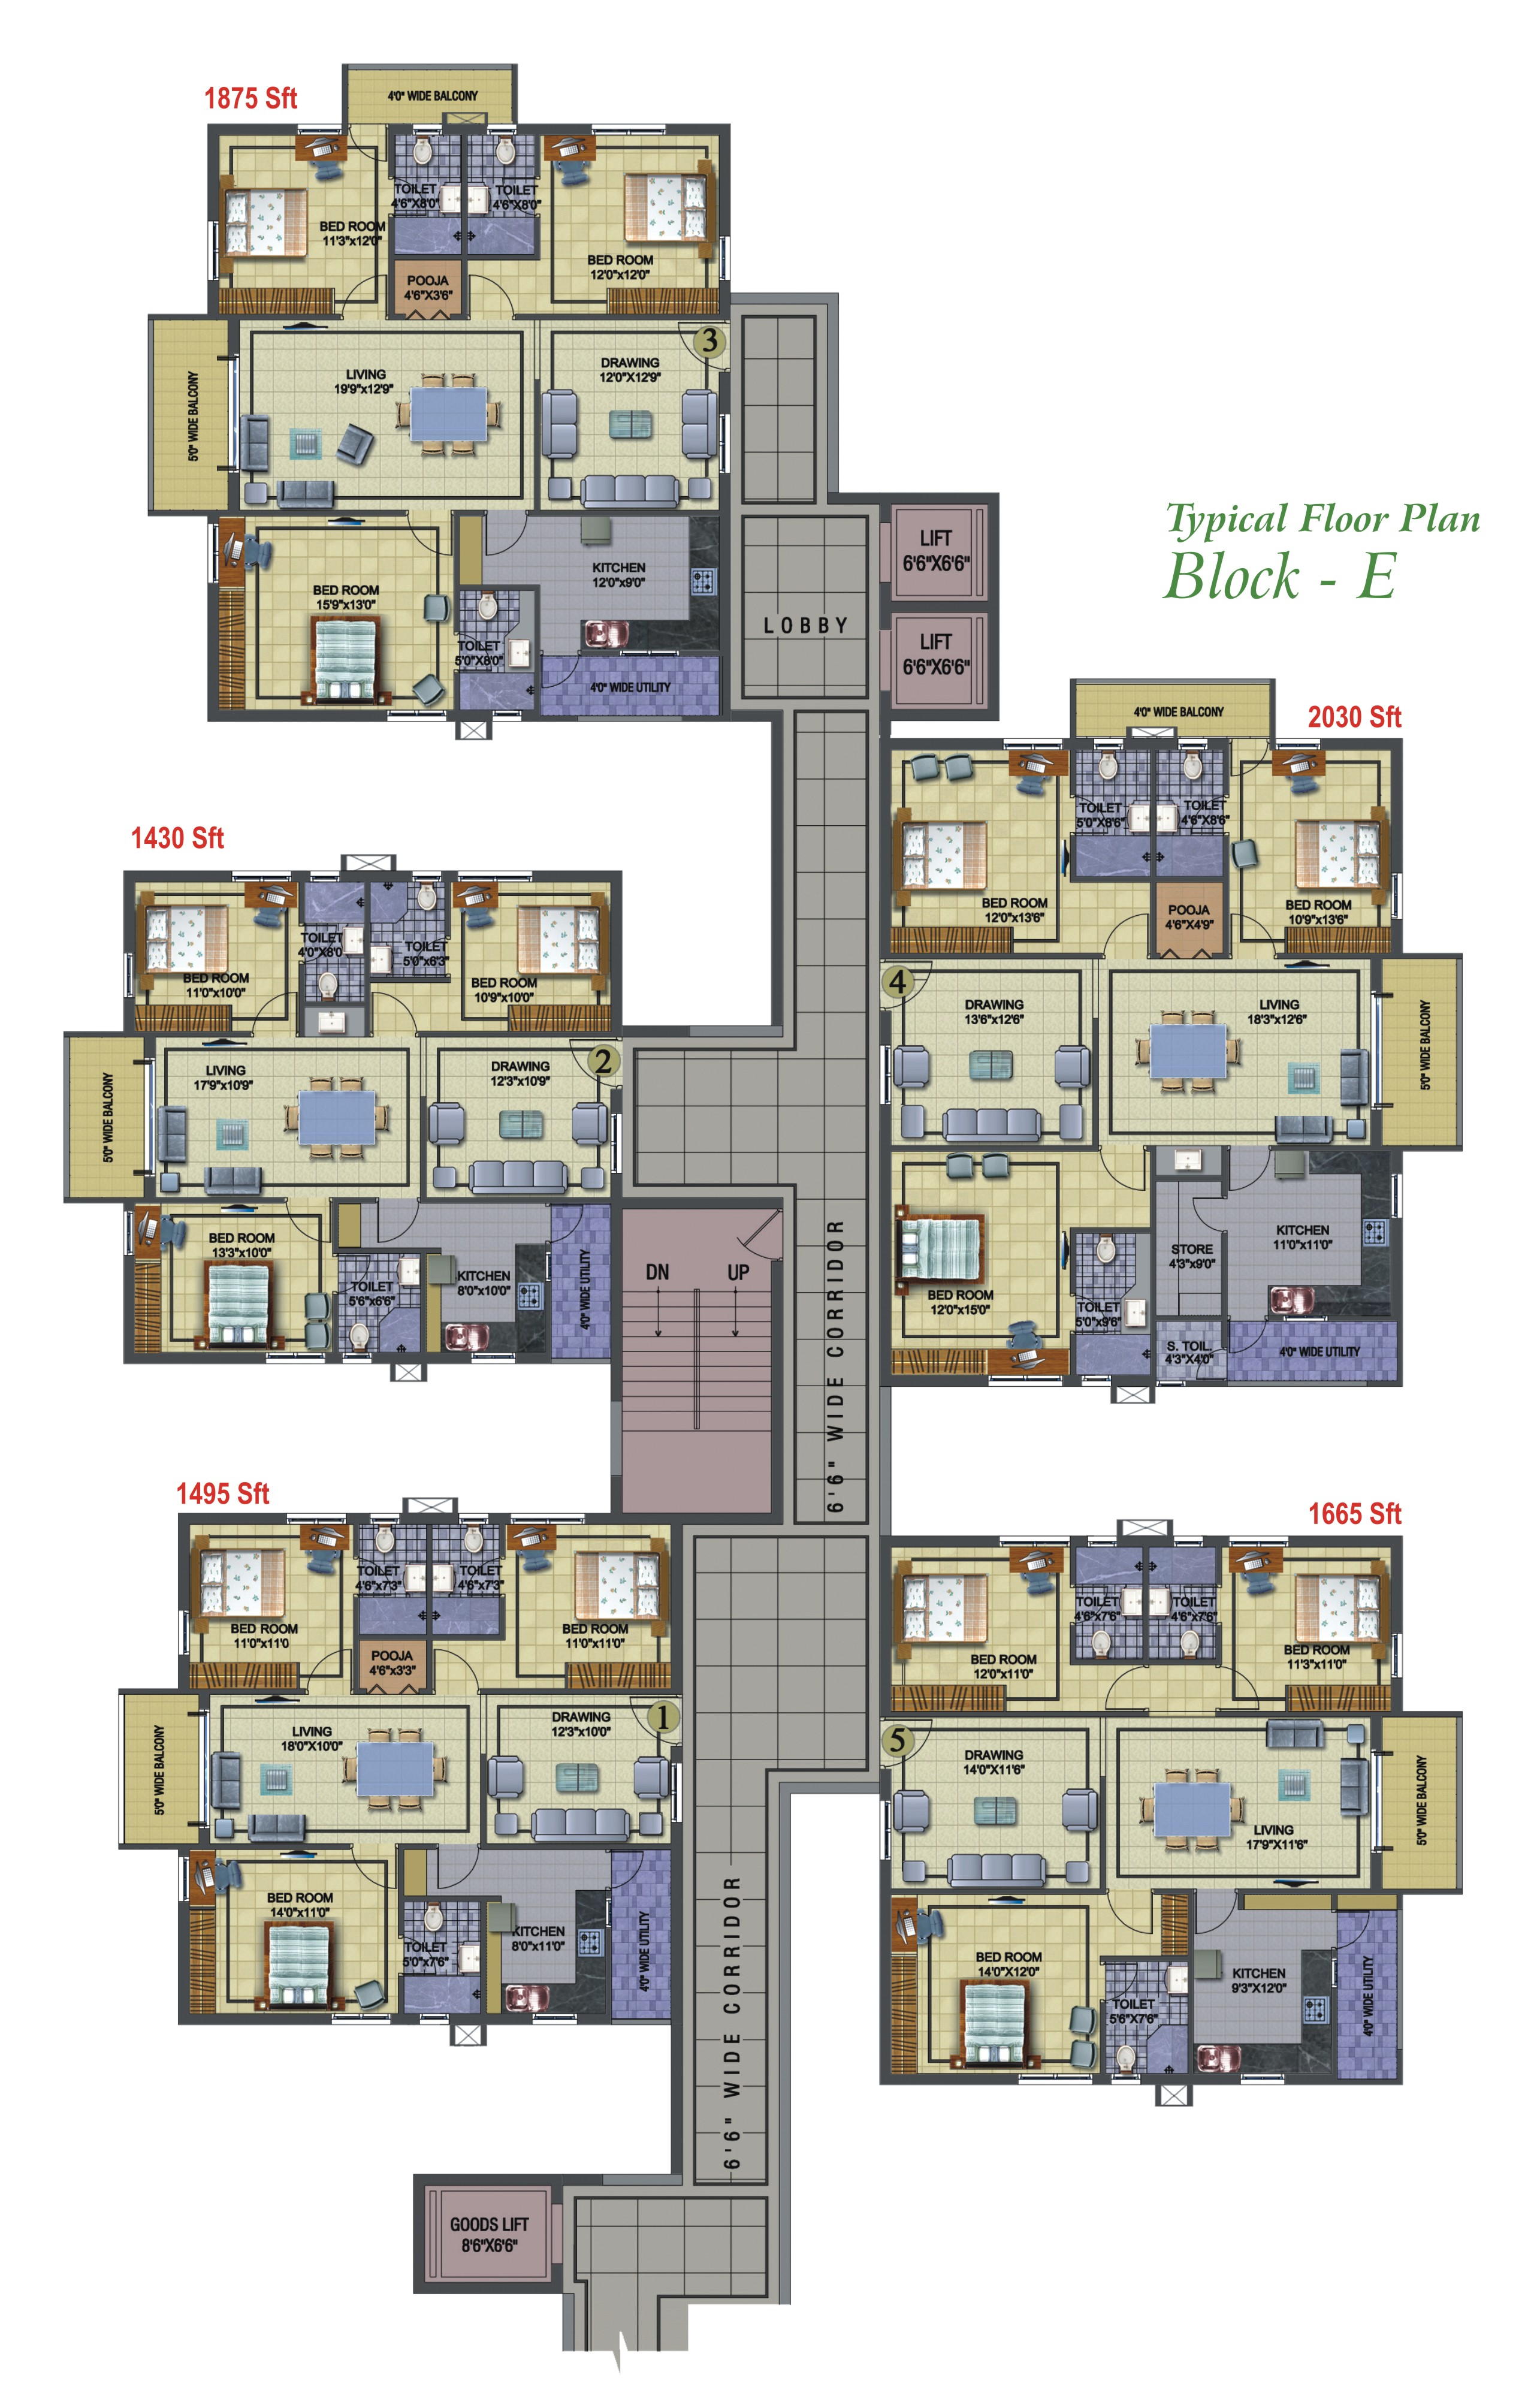 Golf View Typical Floor Plans Block E